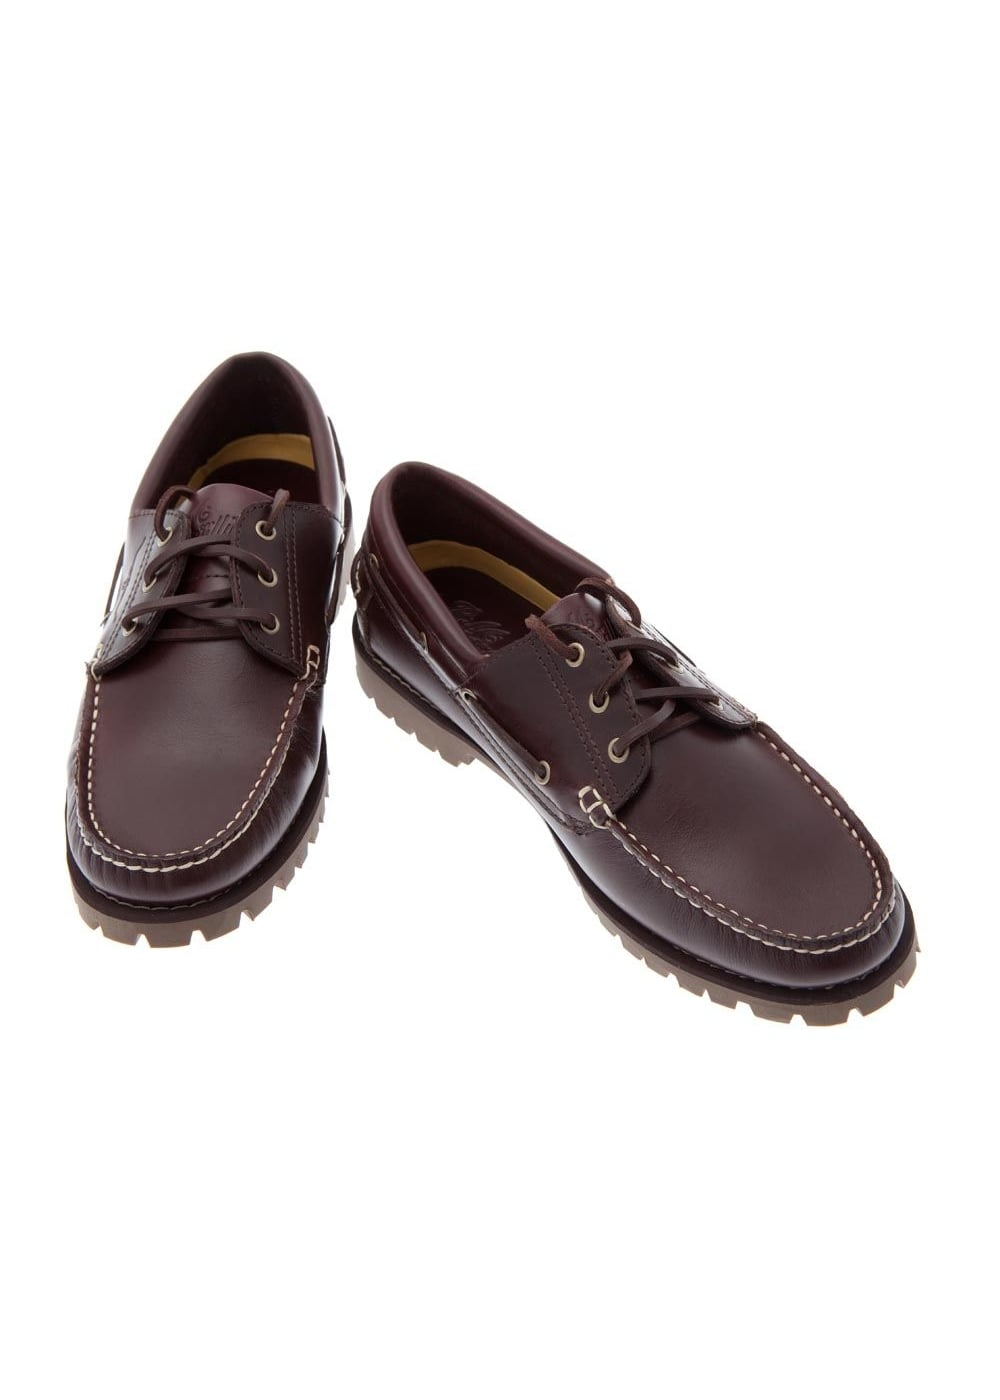 rm williams semaphore shoes mens from a hume uk